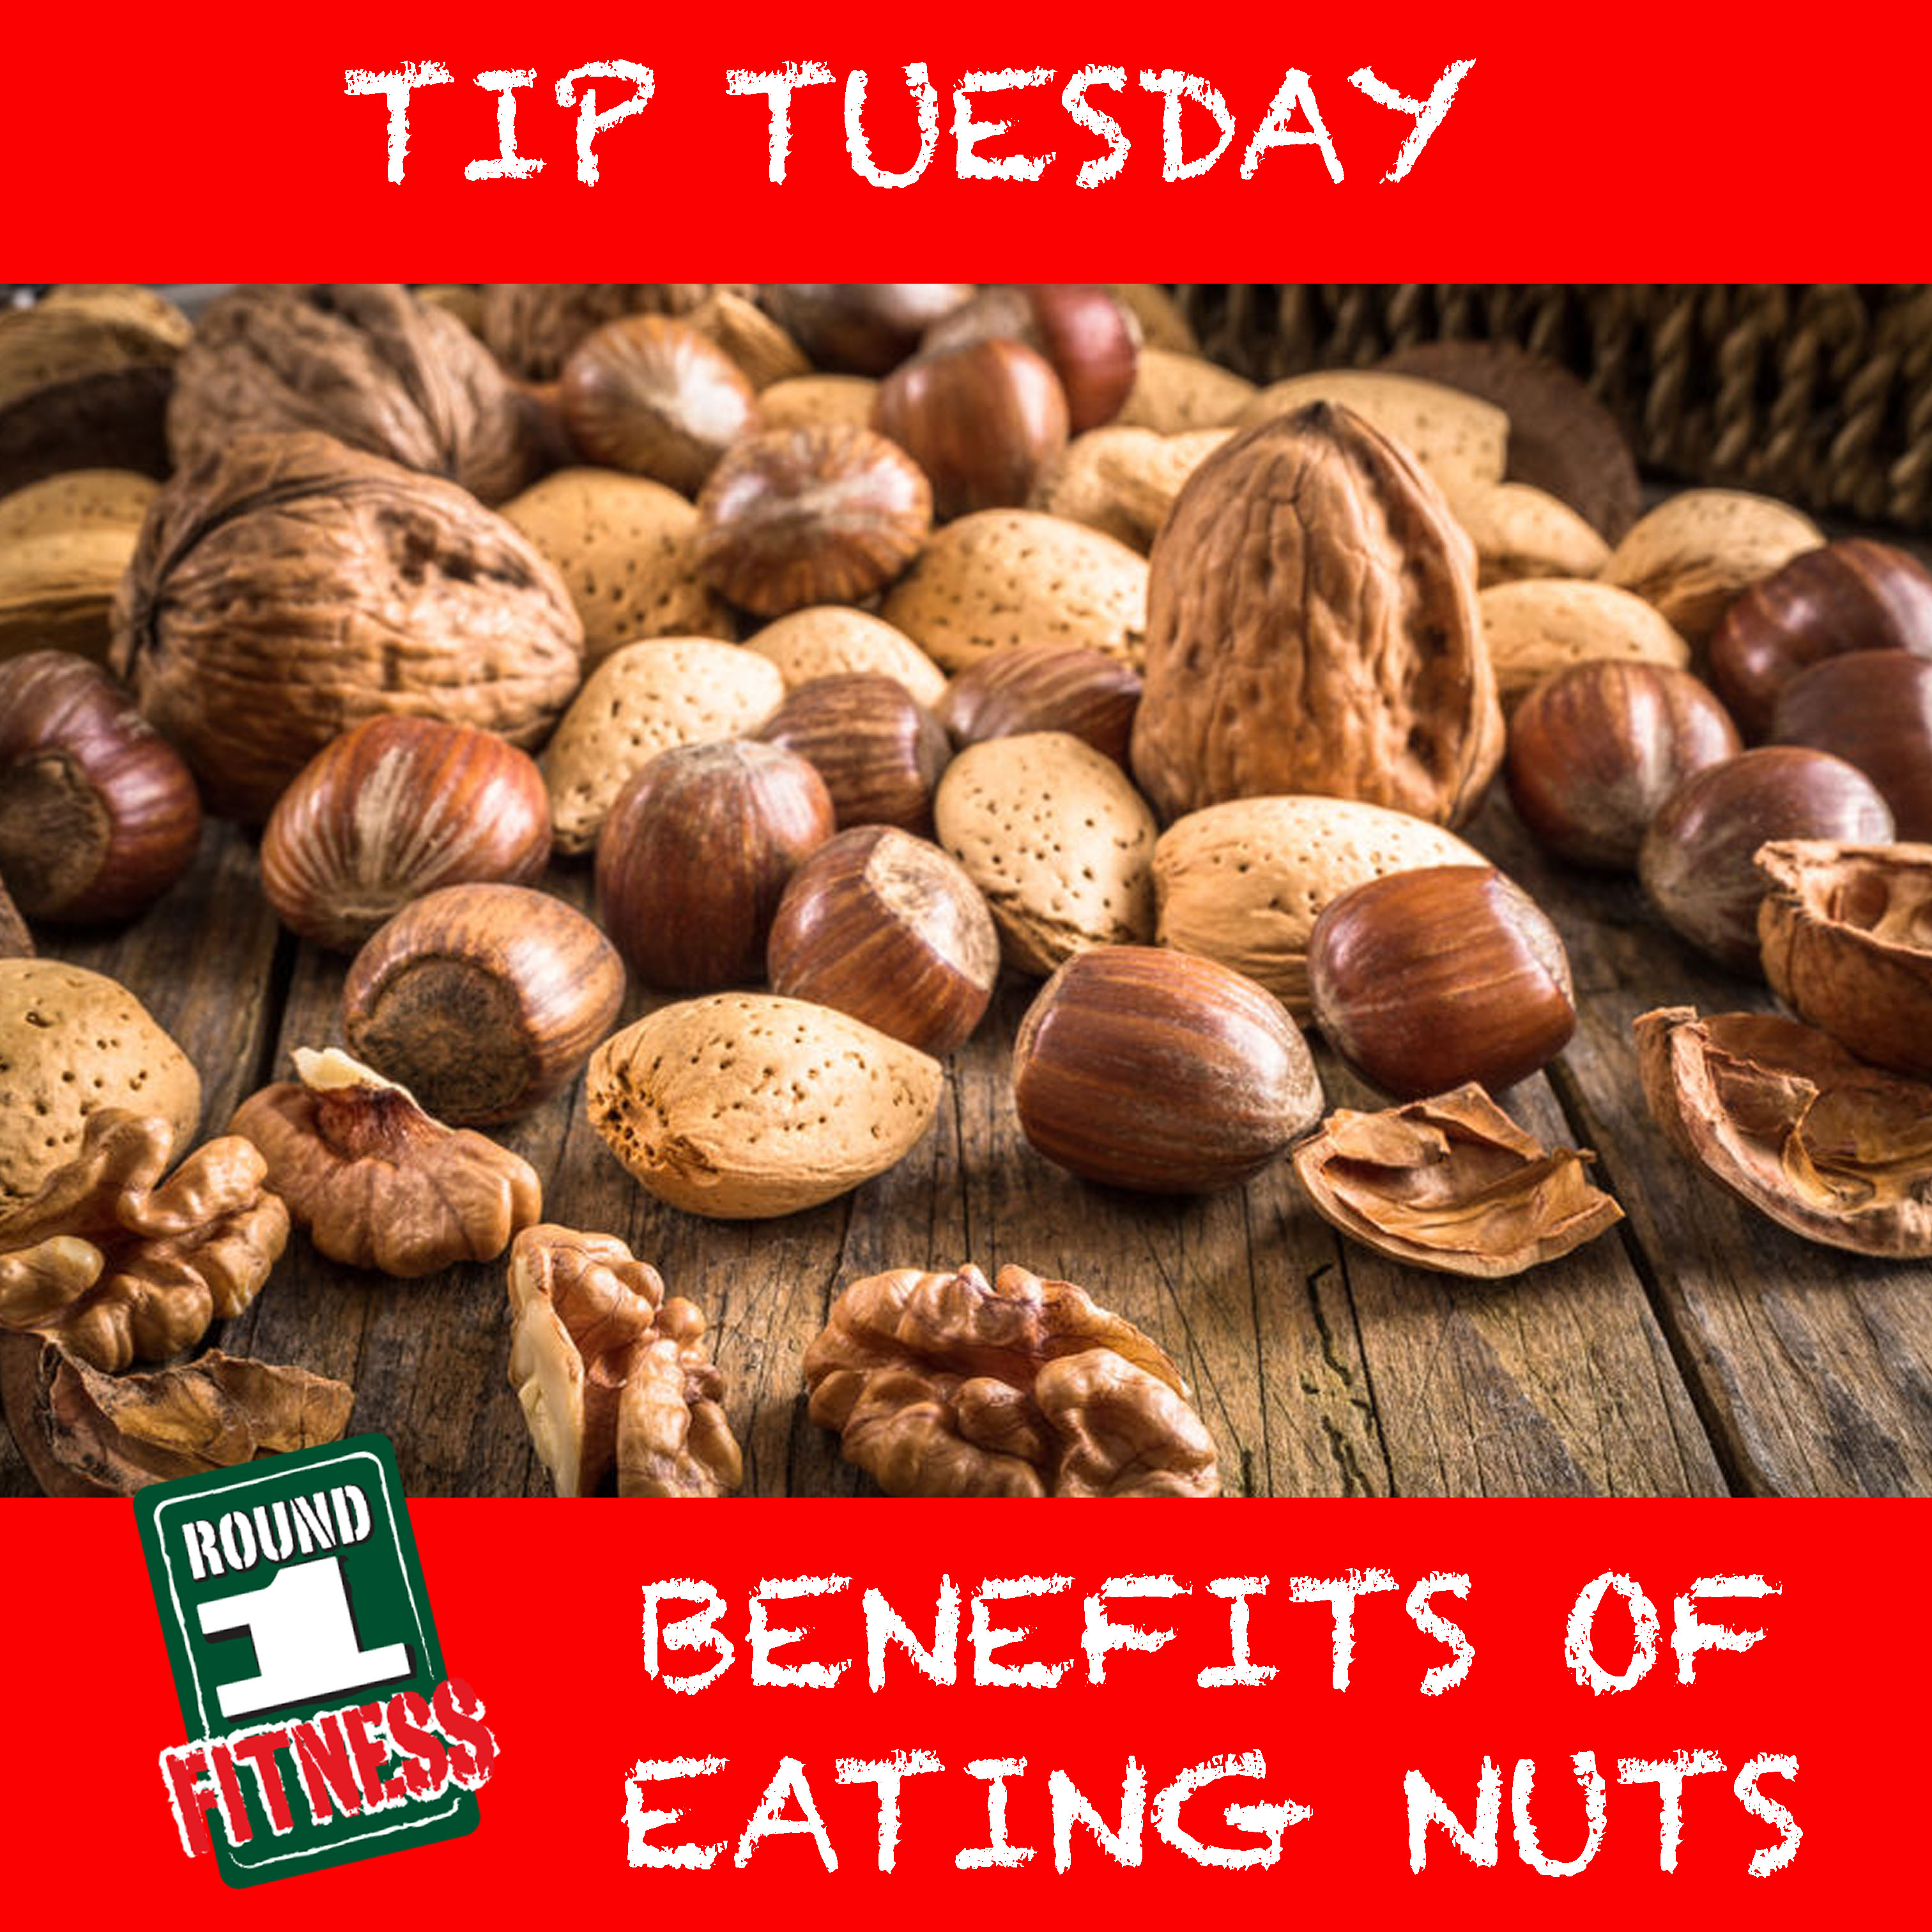 BENEFITS OF EATING NUTS!